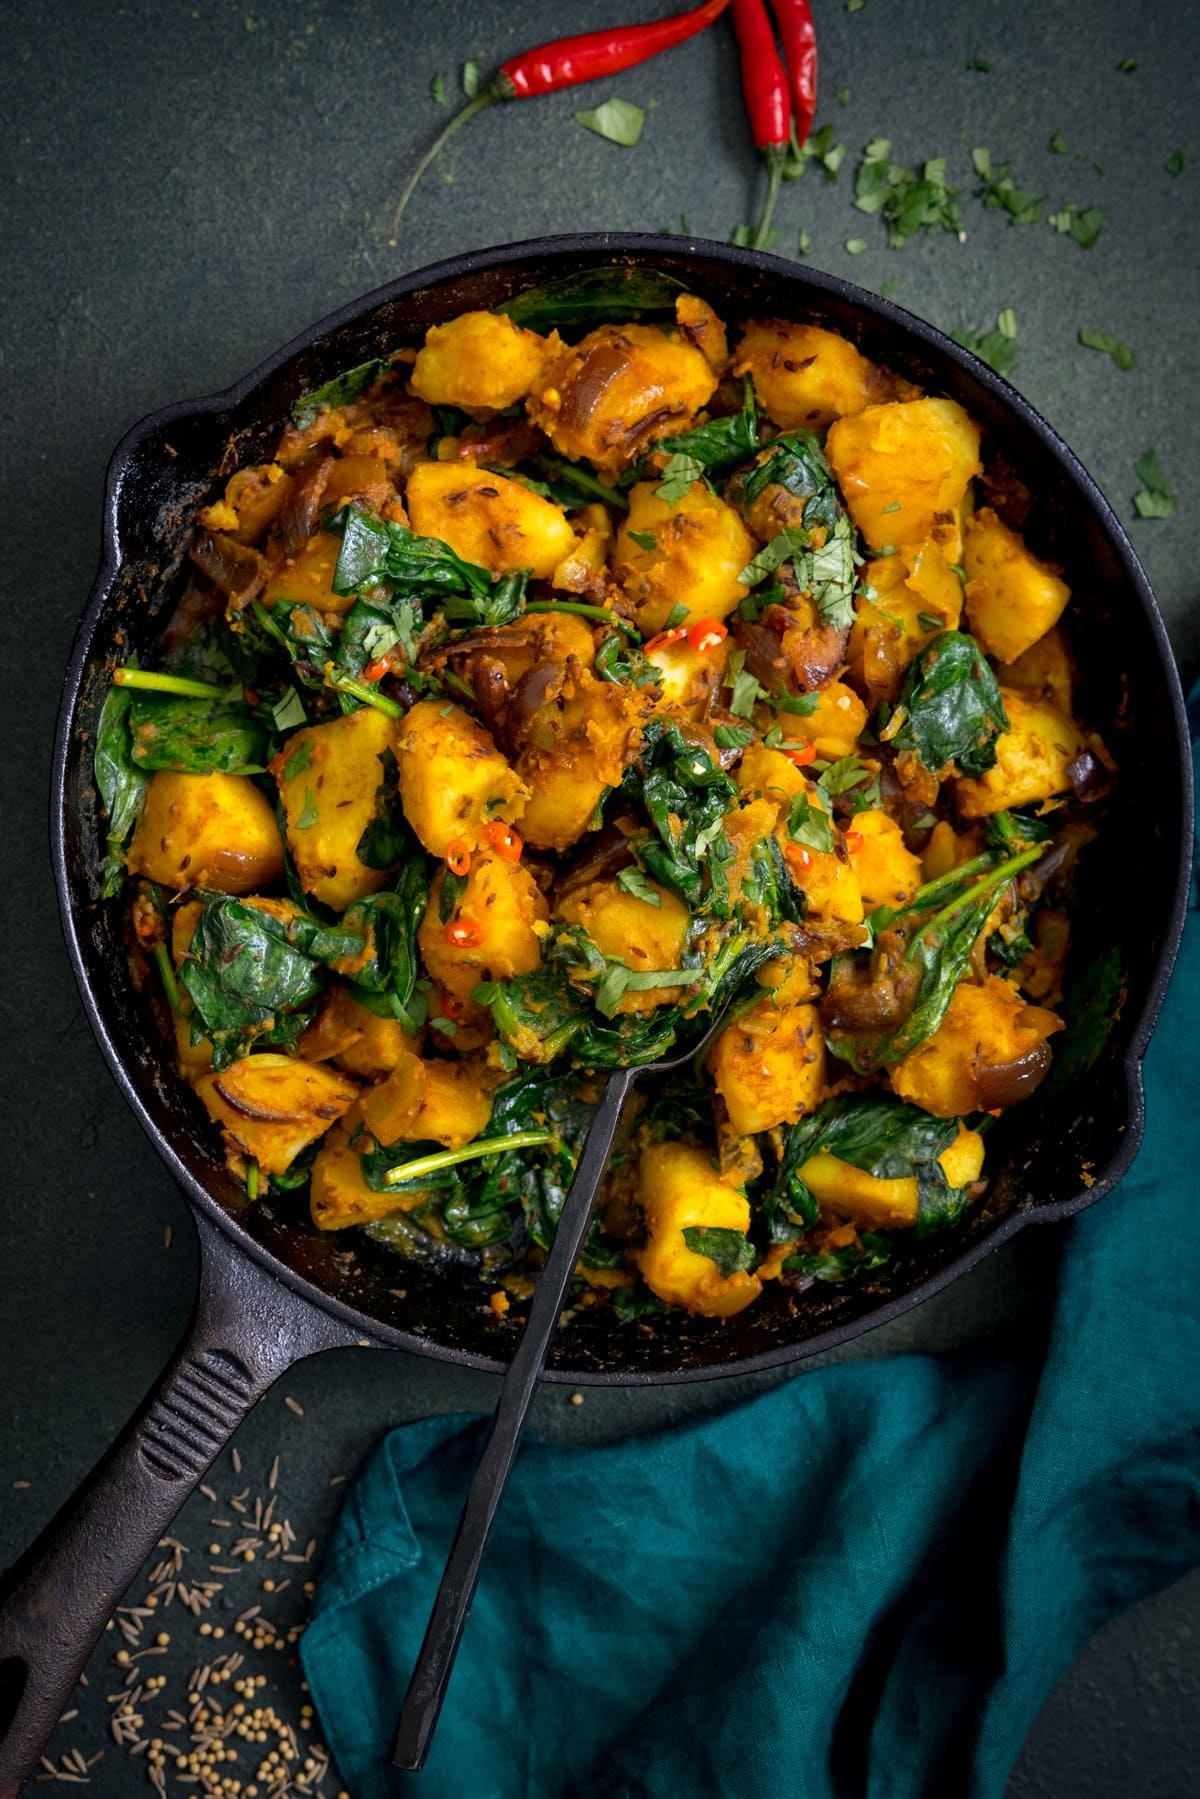 A spoonful of saag aloo being taken from a pan. The pan is on a dark green background.